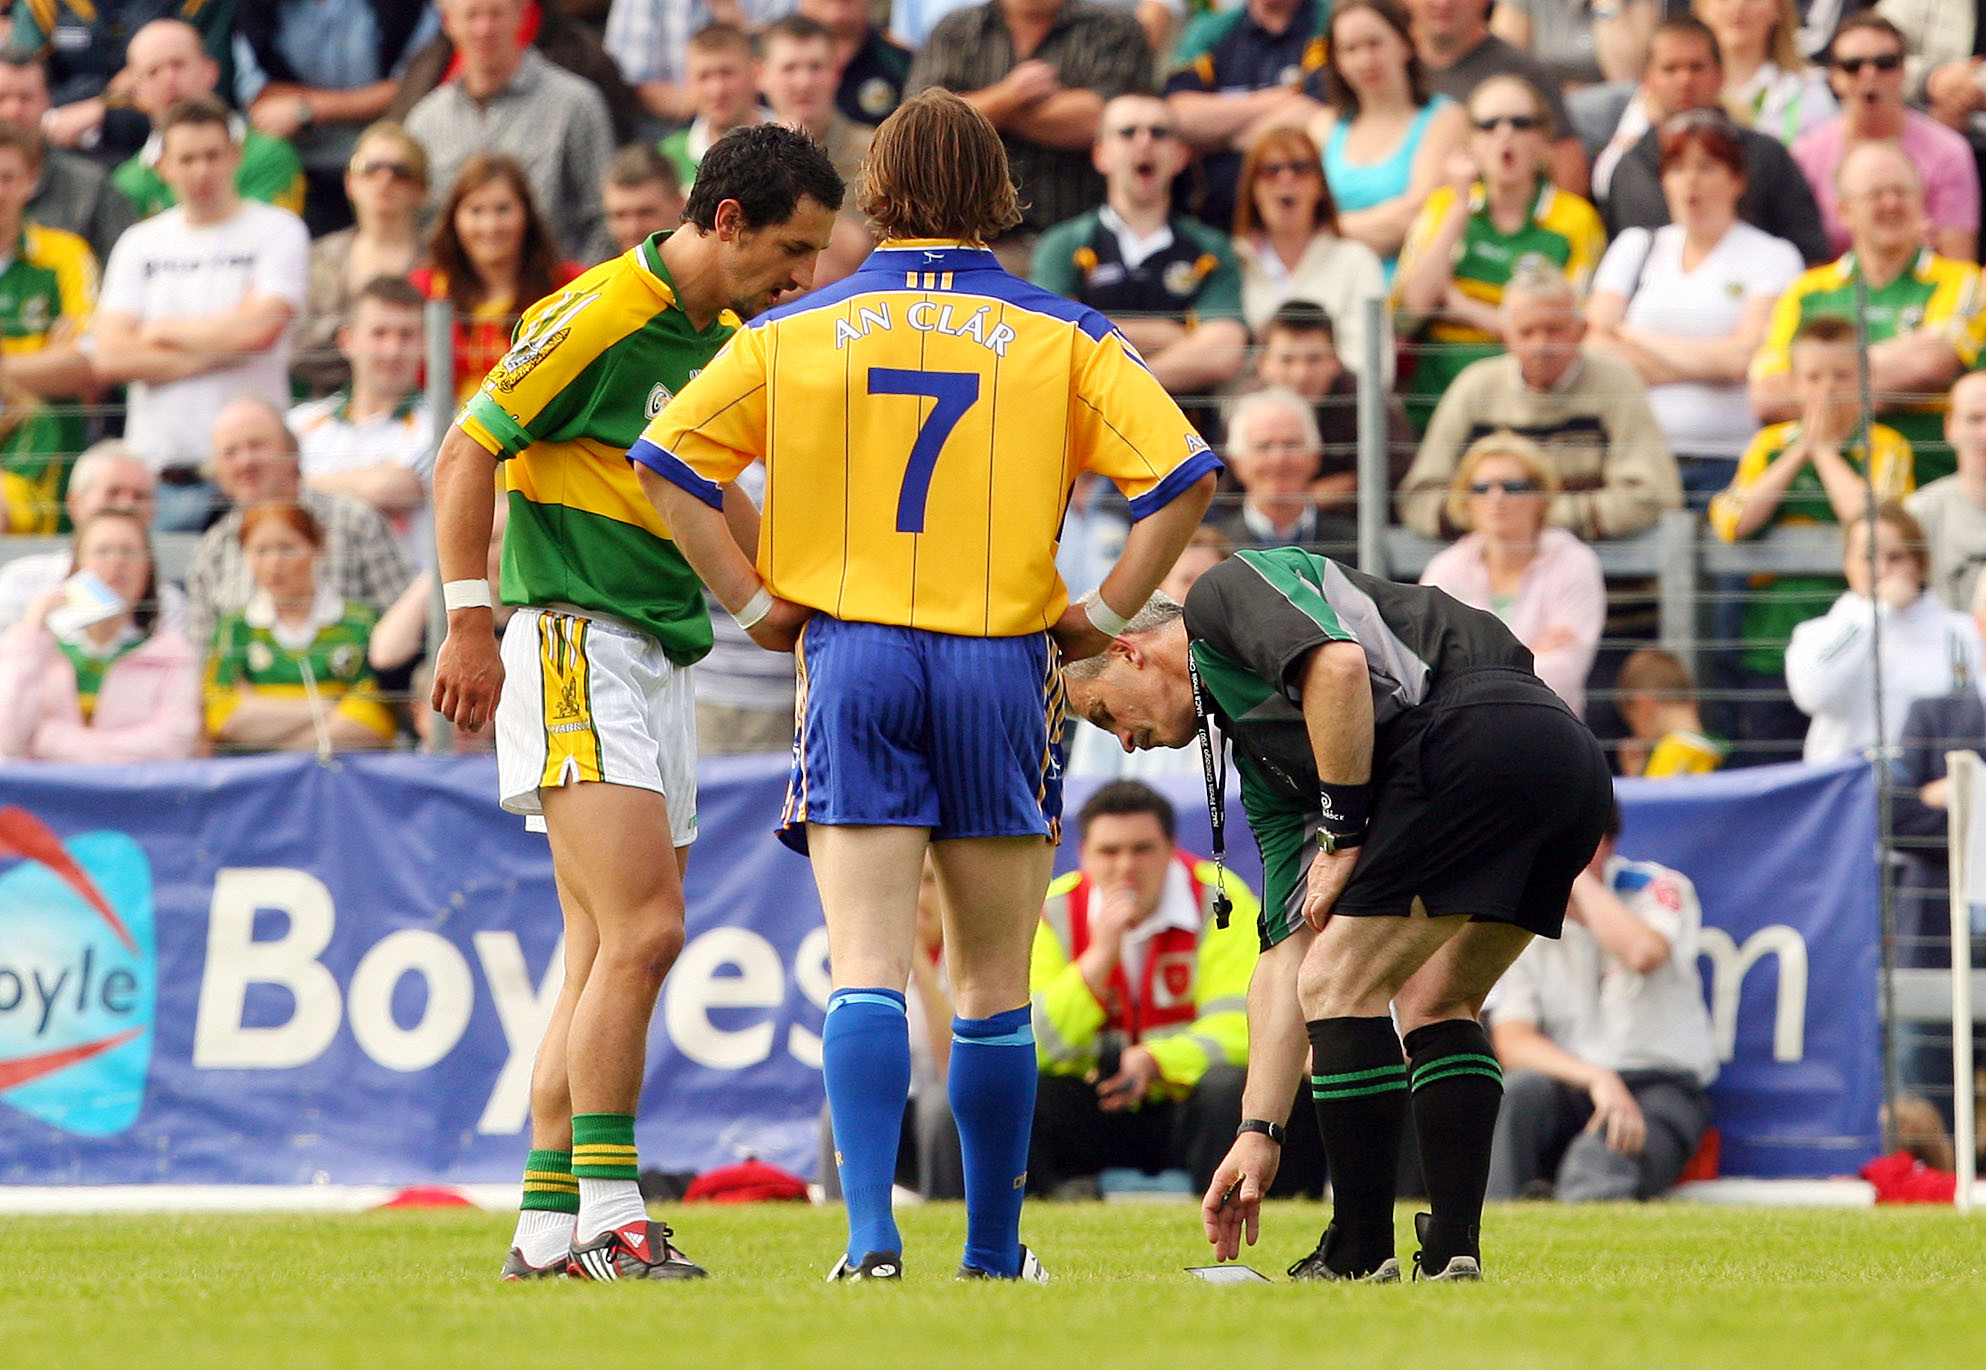 Munster Senior Football Championship Semi-Final 15/6/2008 Kerry vs Clare Kerry captain Paul Galvin knocks the book out of the hands of referee Paddy Russell after getting sent off. Mandatory Credit ©INPHO/Cathal Noonan